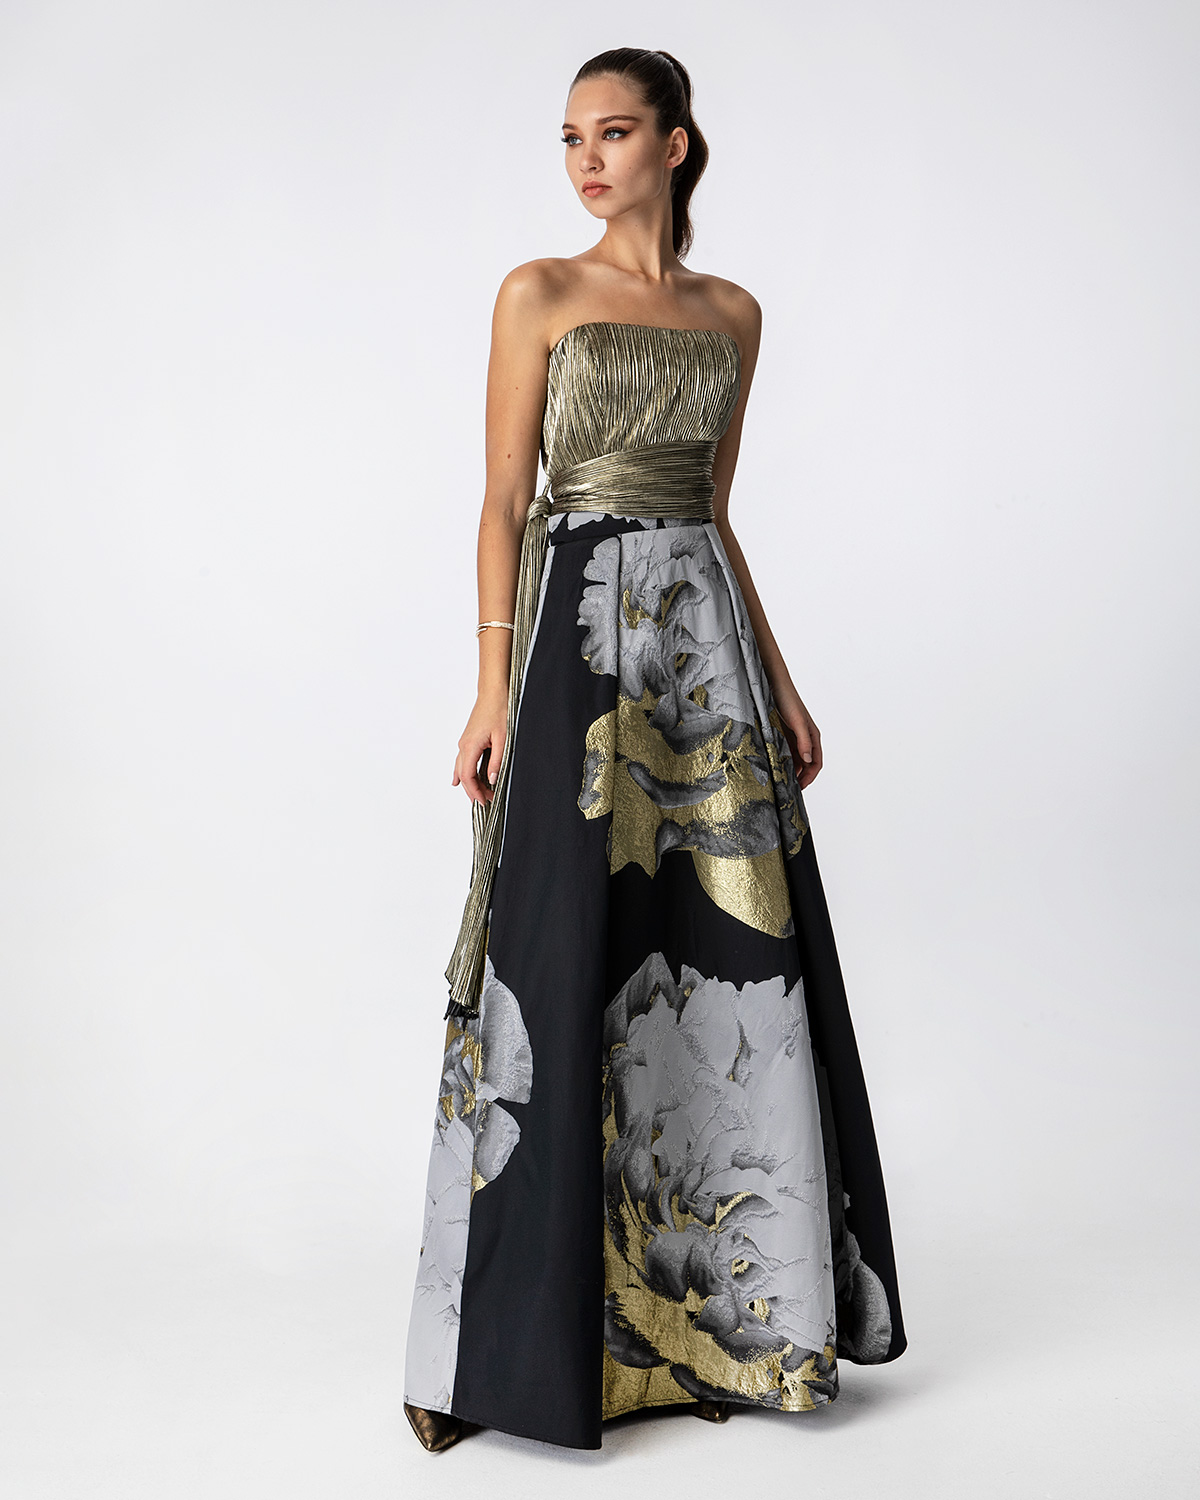 Long printed skirt with solid color lurex top